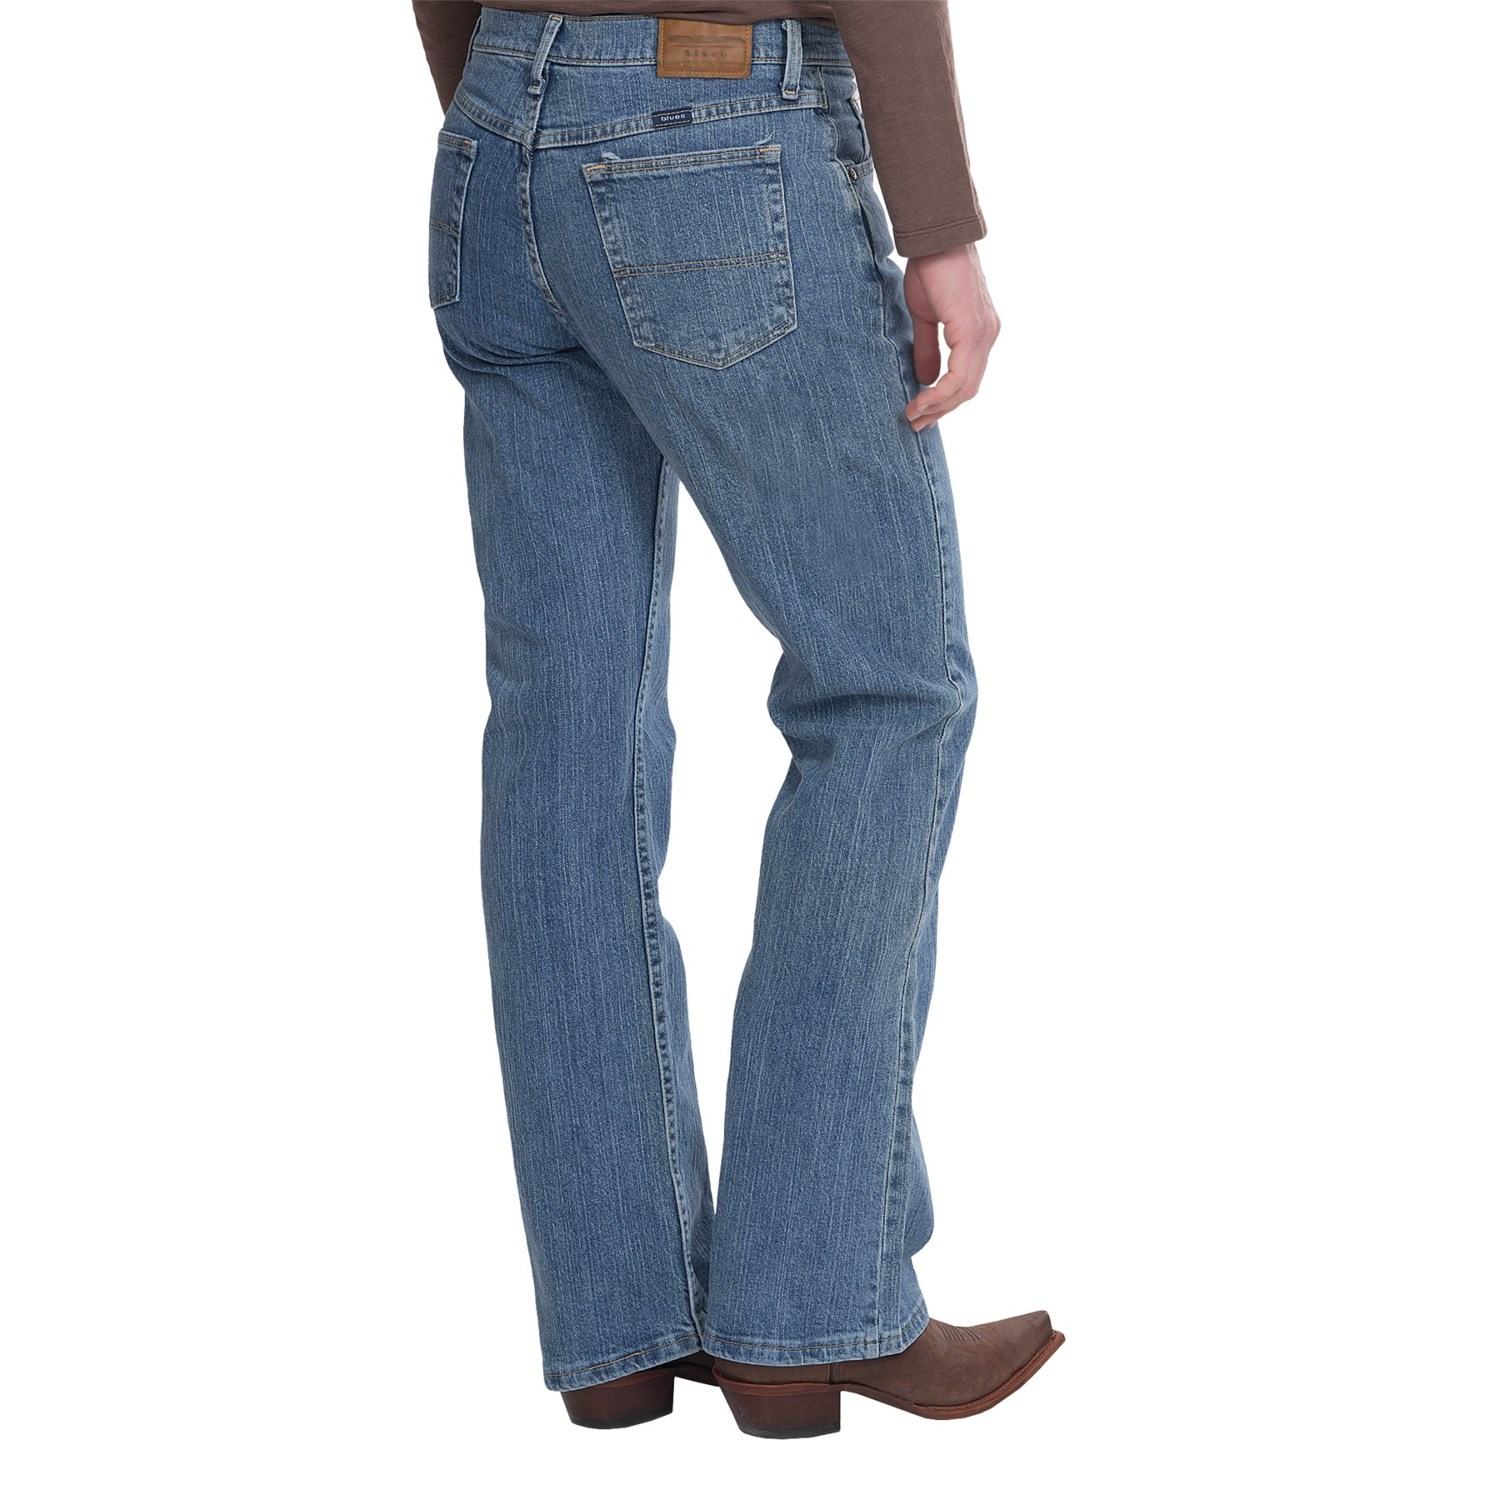 Comfort Fit 5-Pocket Bootcut Jeans: You asked for it, you got it — 5-pocket jeans that give you the perfect mix of comfort, fashion and a great fit. High-quality stretch denim, bootcut jeans feature functional pockets, a comfort waist that stays flat and a faux-fly front.